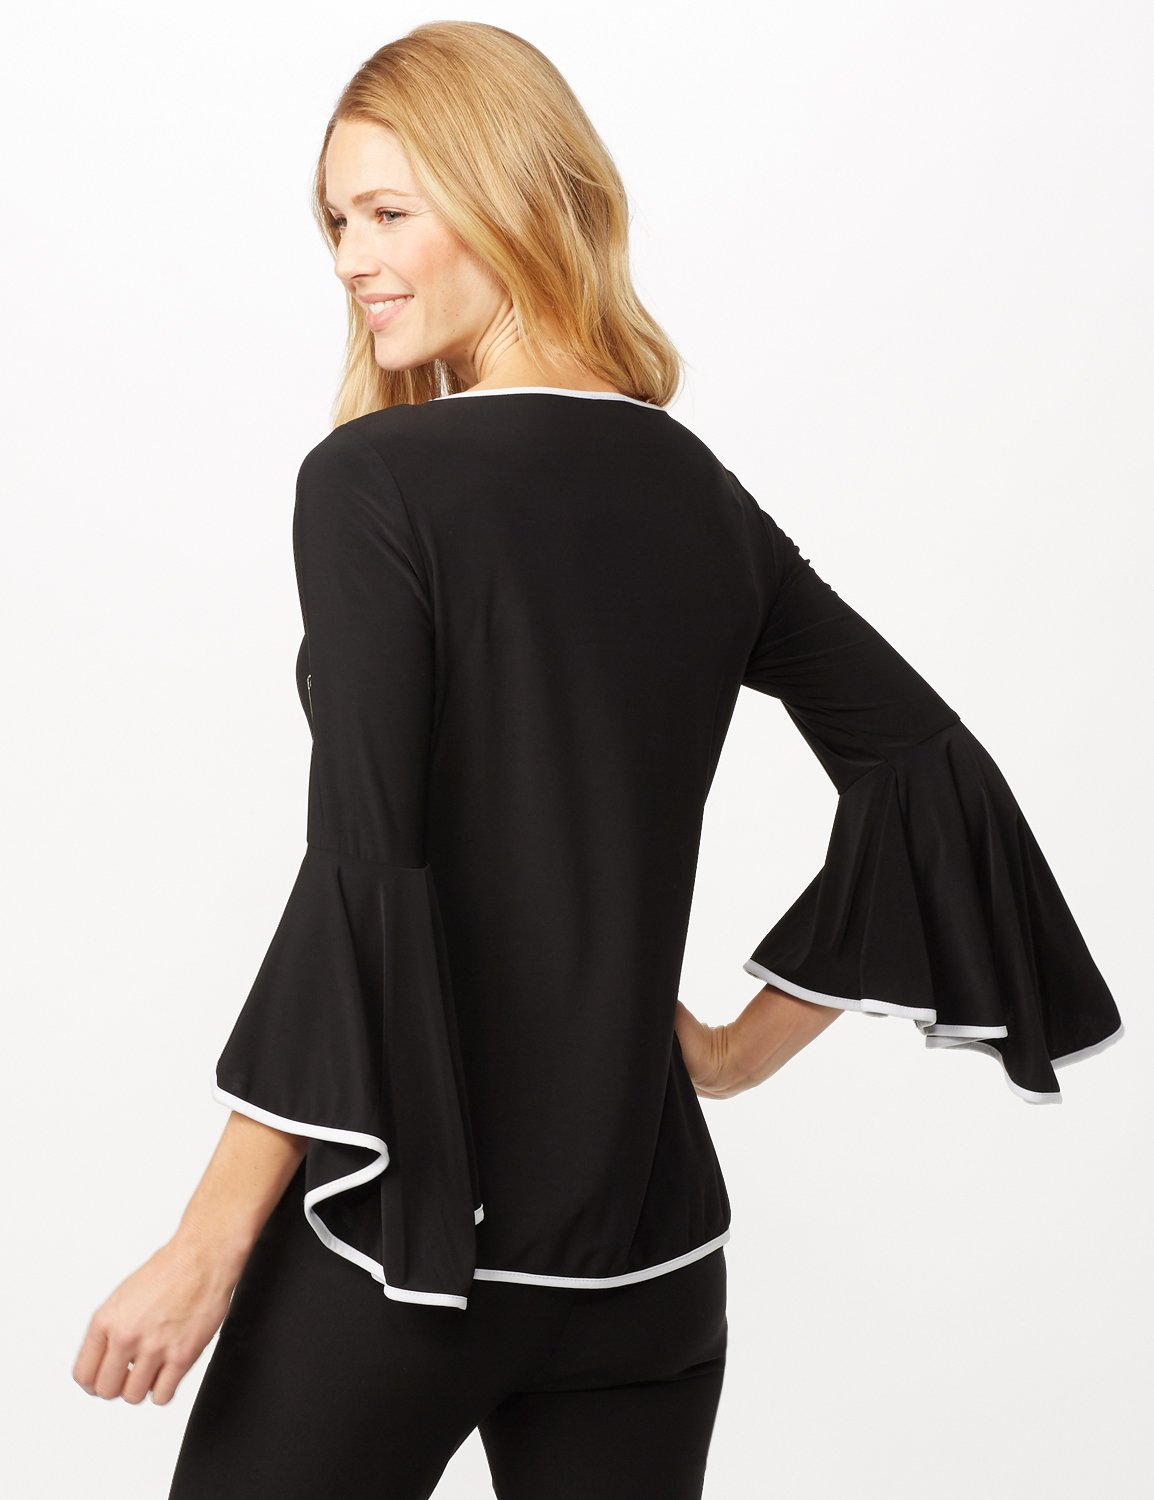 Piped Bell Sleeve Knit Top -Black/white - Back